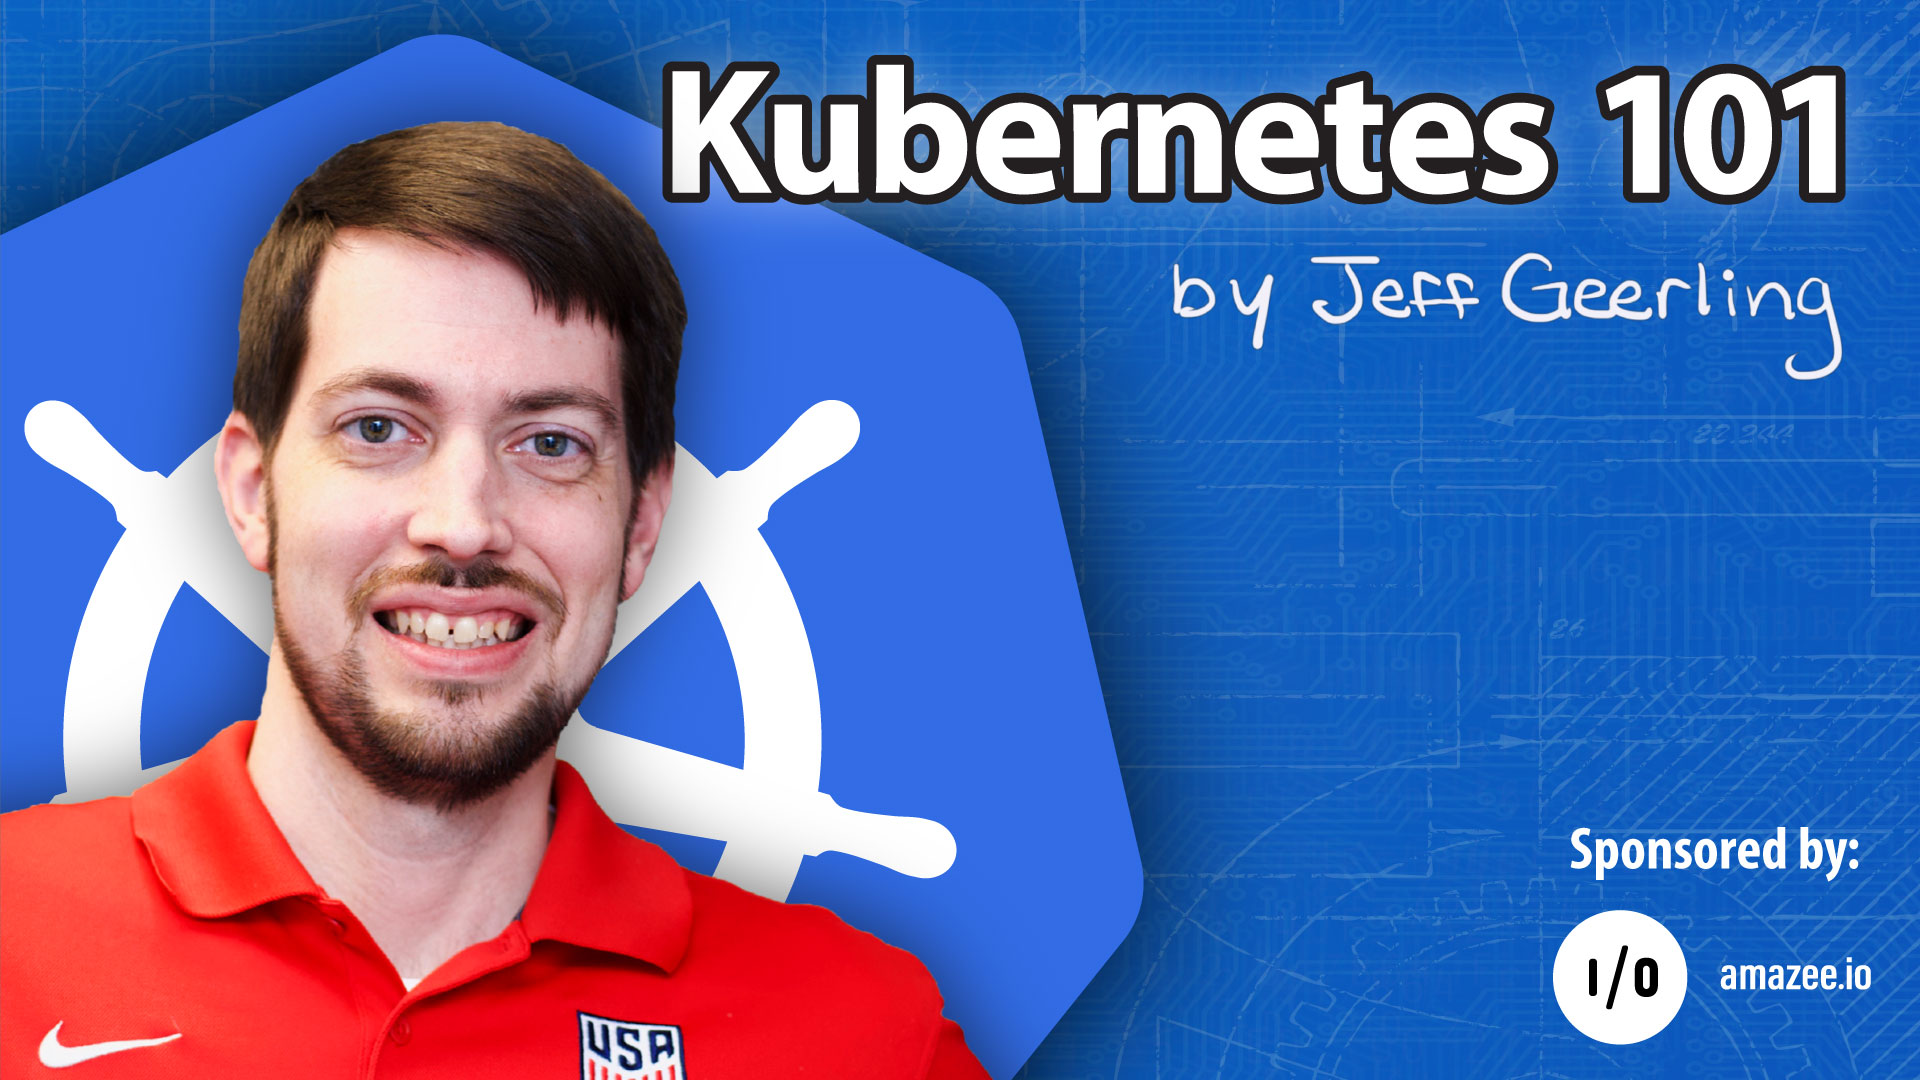 Kubernetes 101 Series Artwork